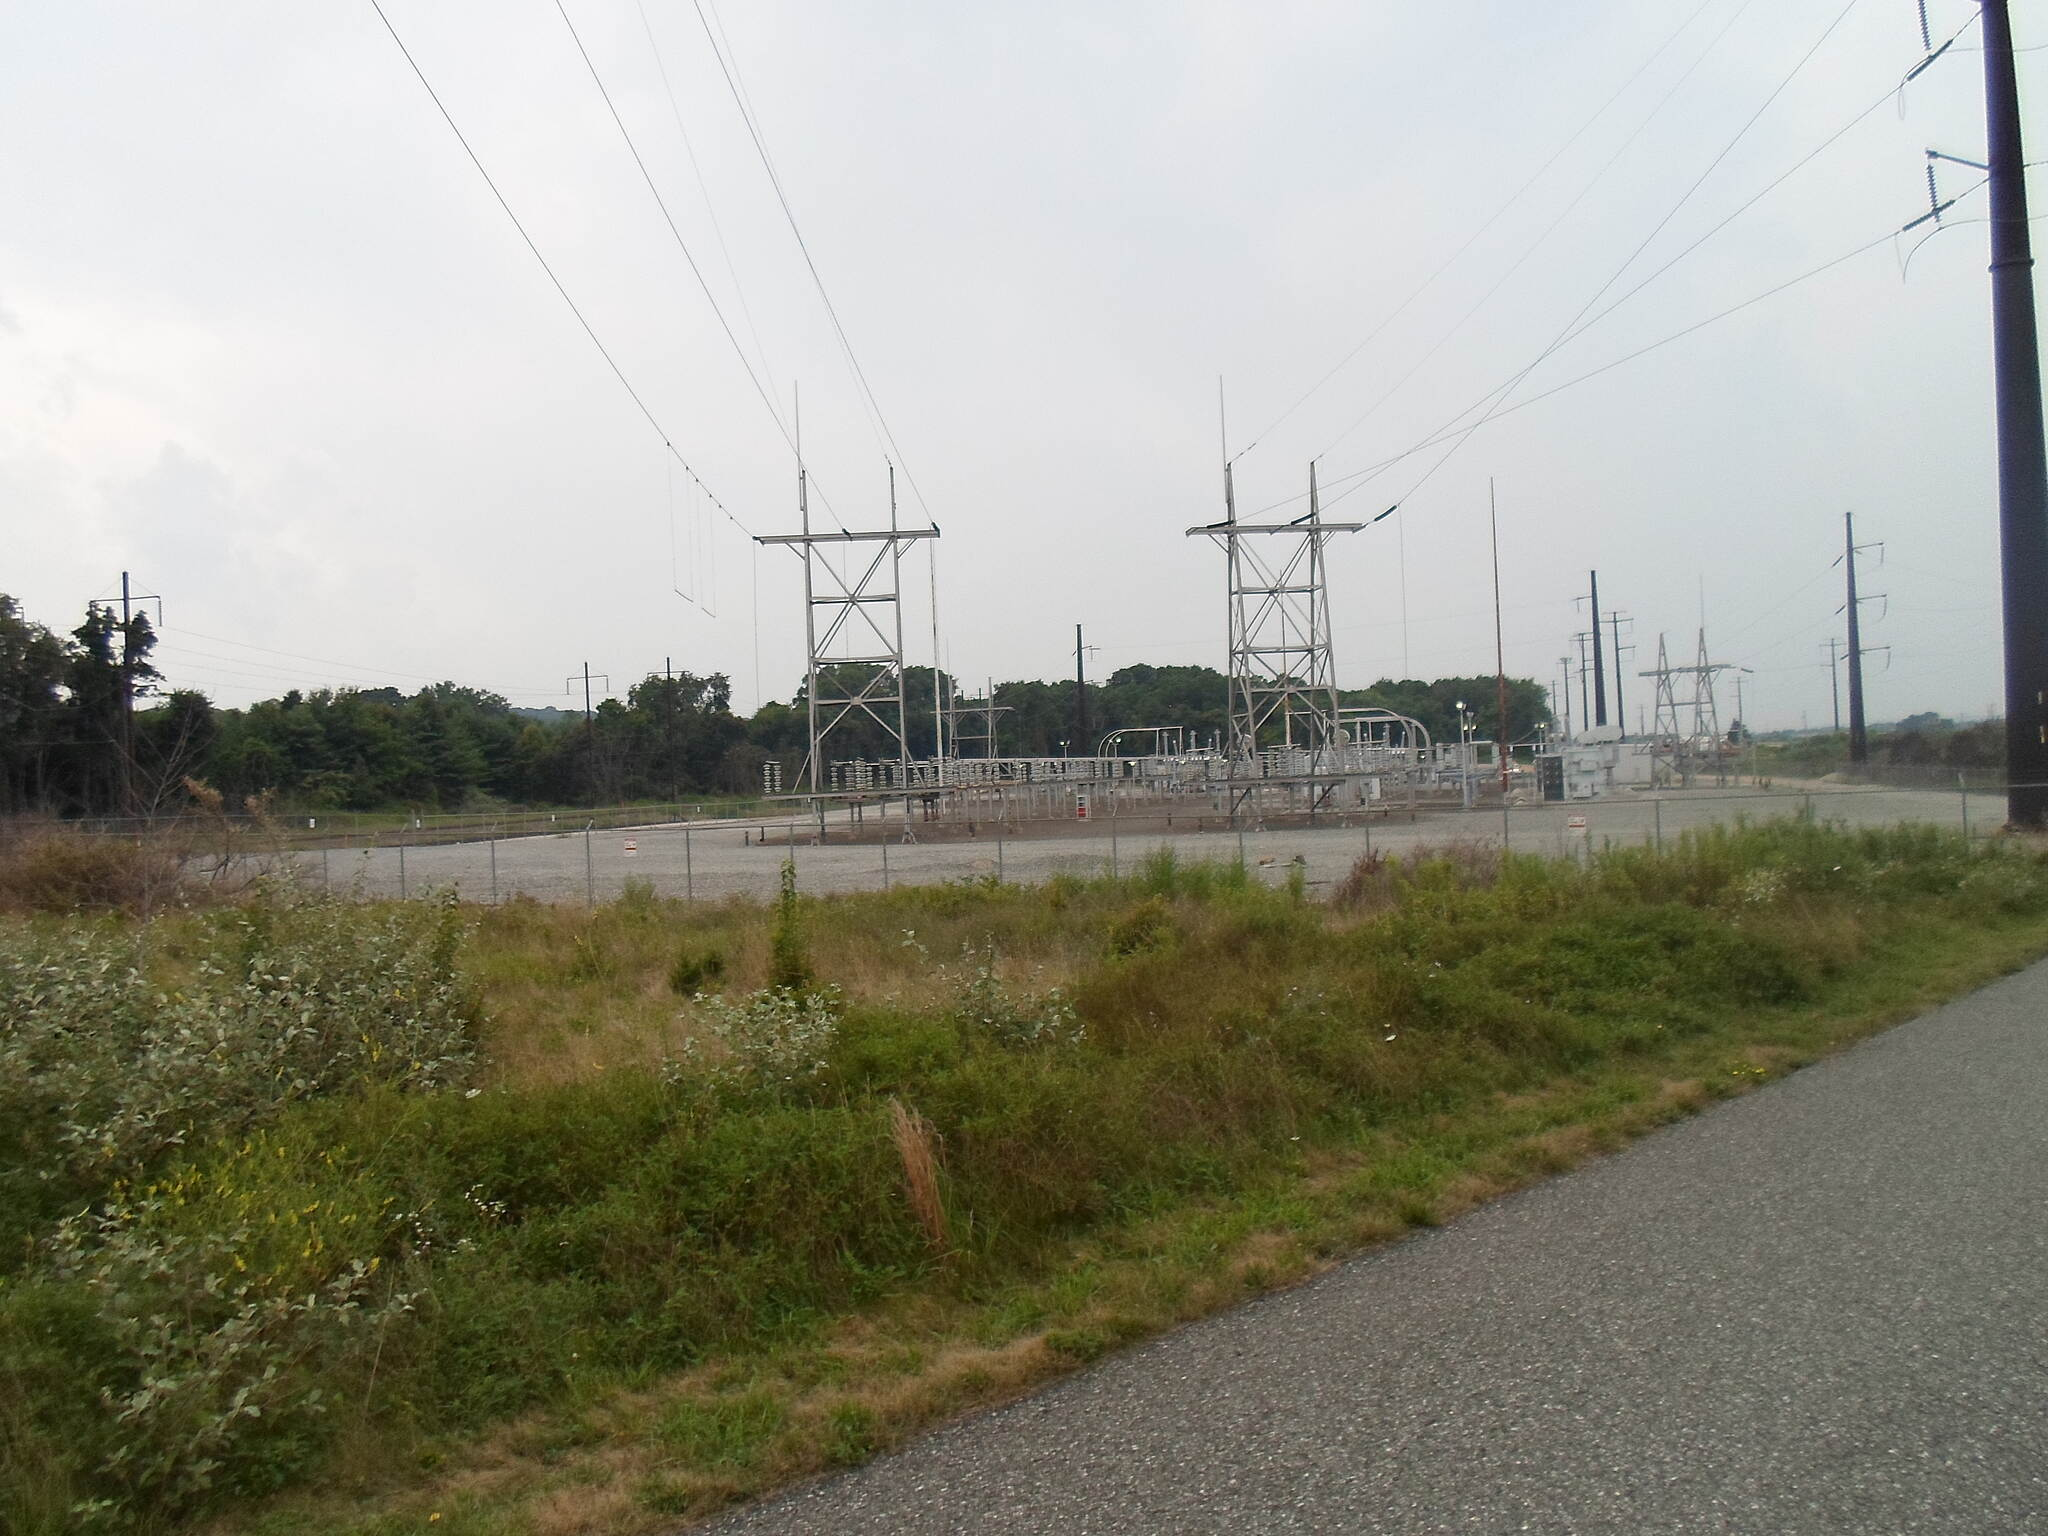 Chester Valley Trail Chester Valley Trail In addition to serving as a hub for rail and road networks, the King of Prussia area is also a site where several high-tension power lines converge. This substation is just east of Warner Road and is visible from the trail.